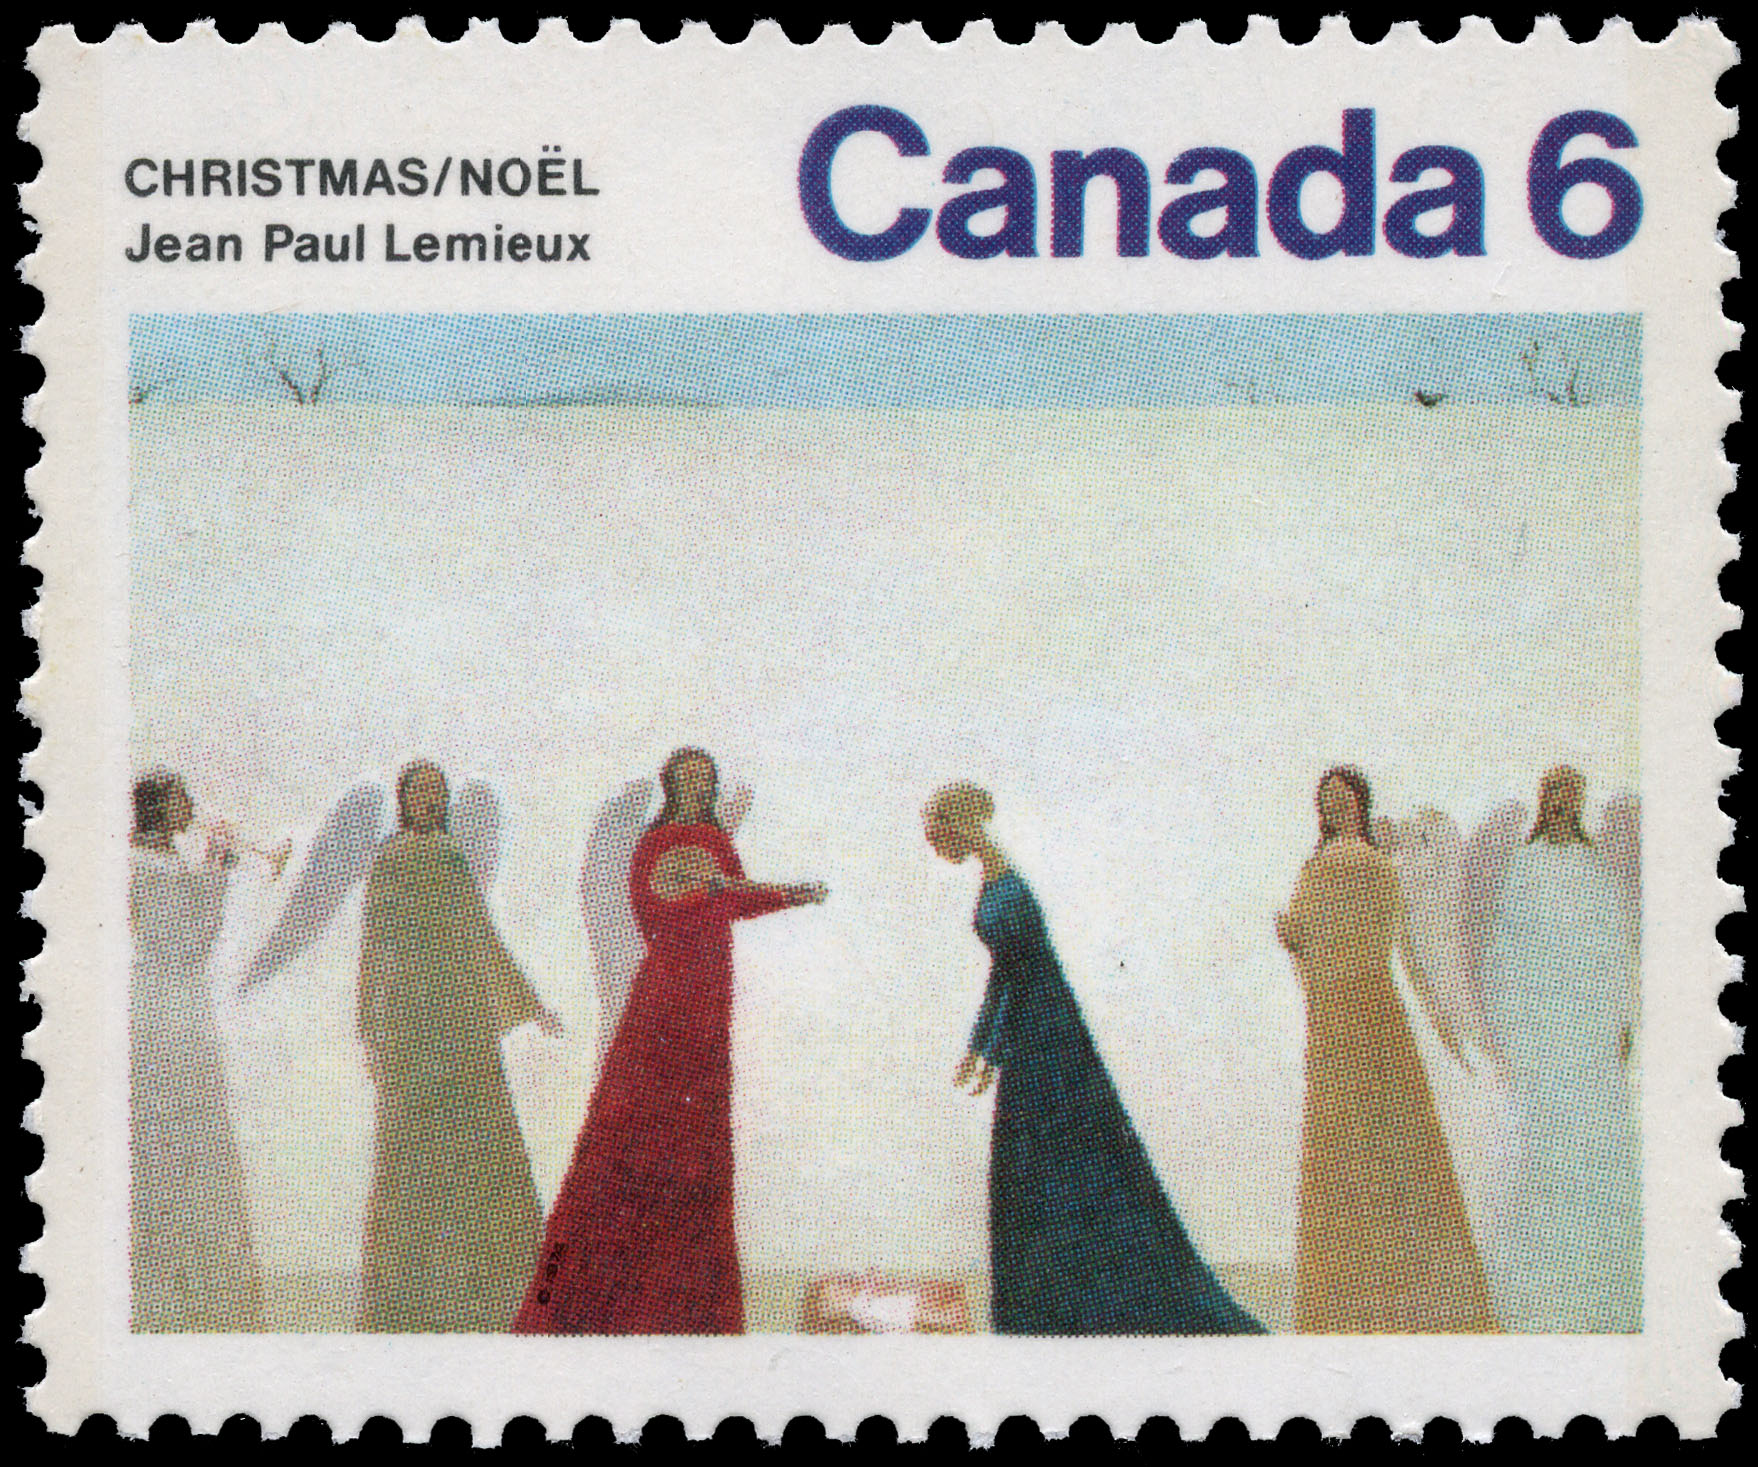 Nativite Canada Postage Stamp | Christmas